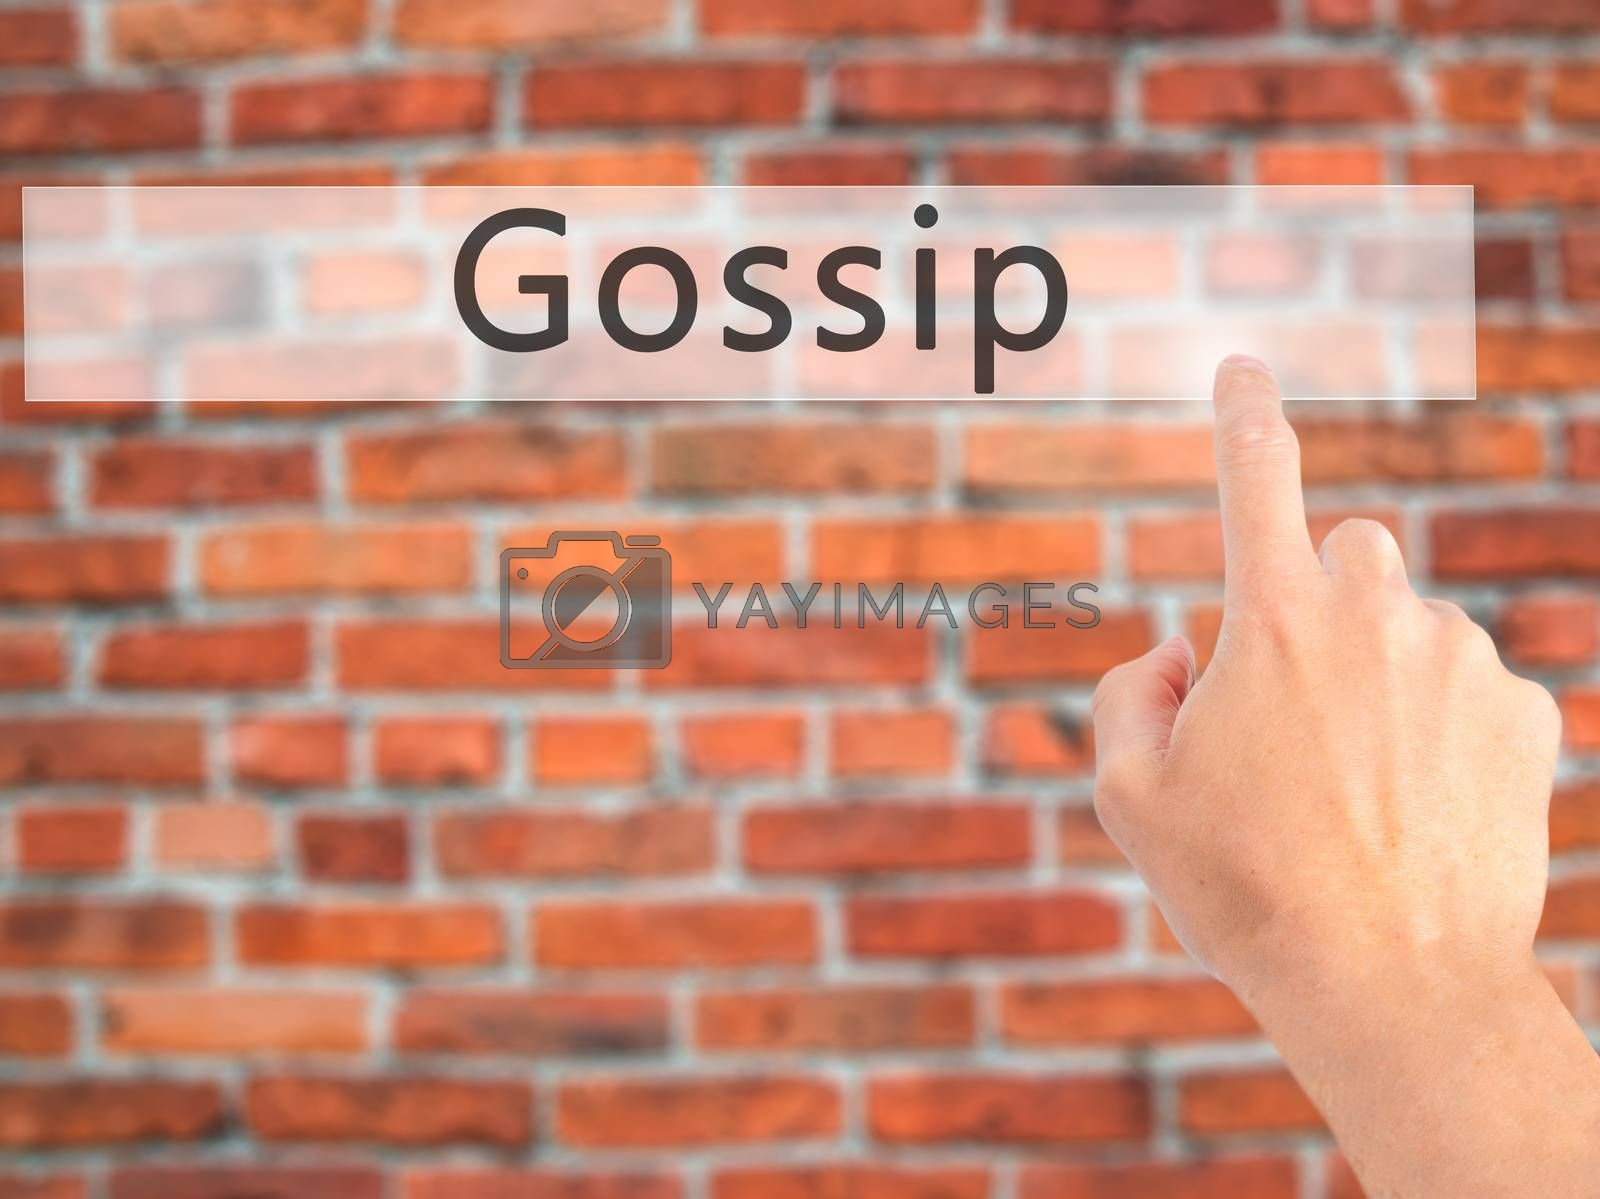 Gossip - Hand pressing a button on blurred background concept on by jackald